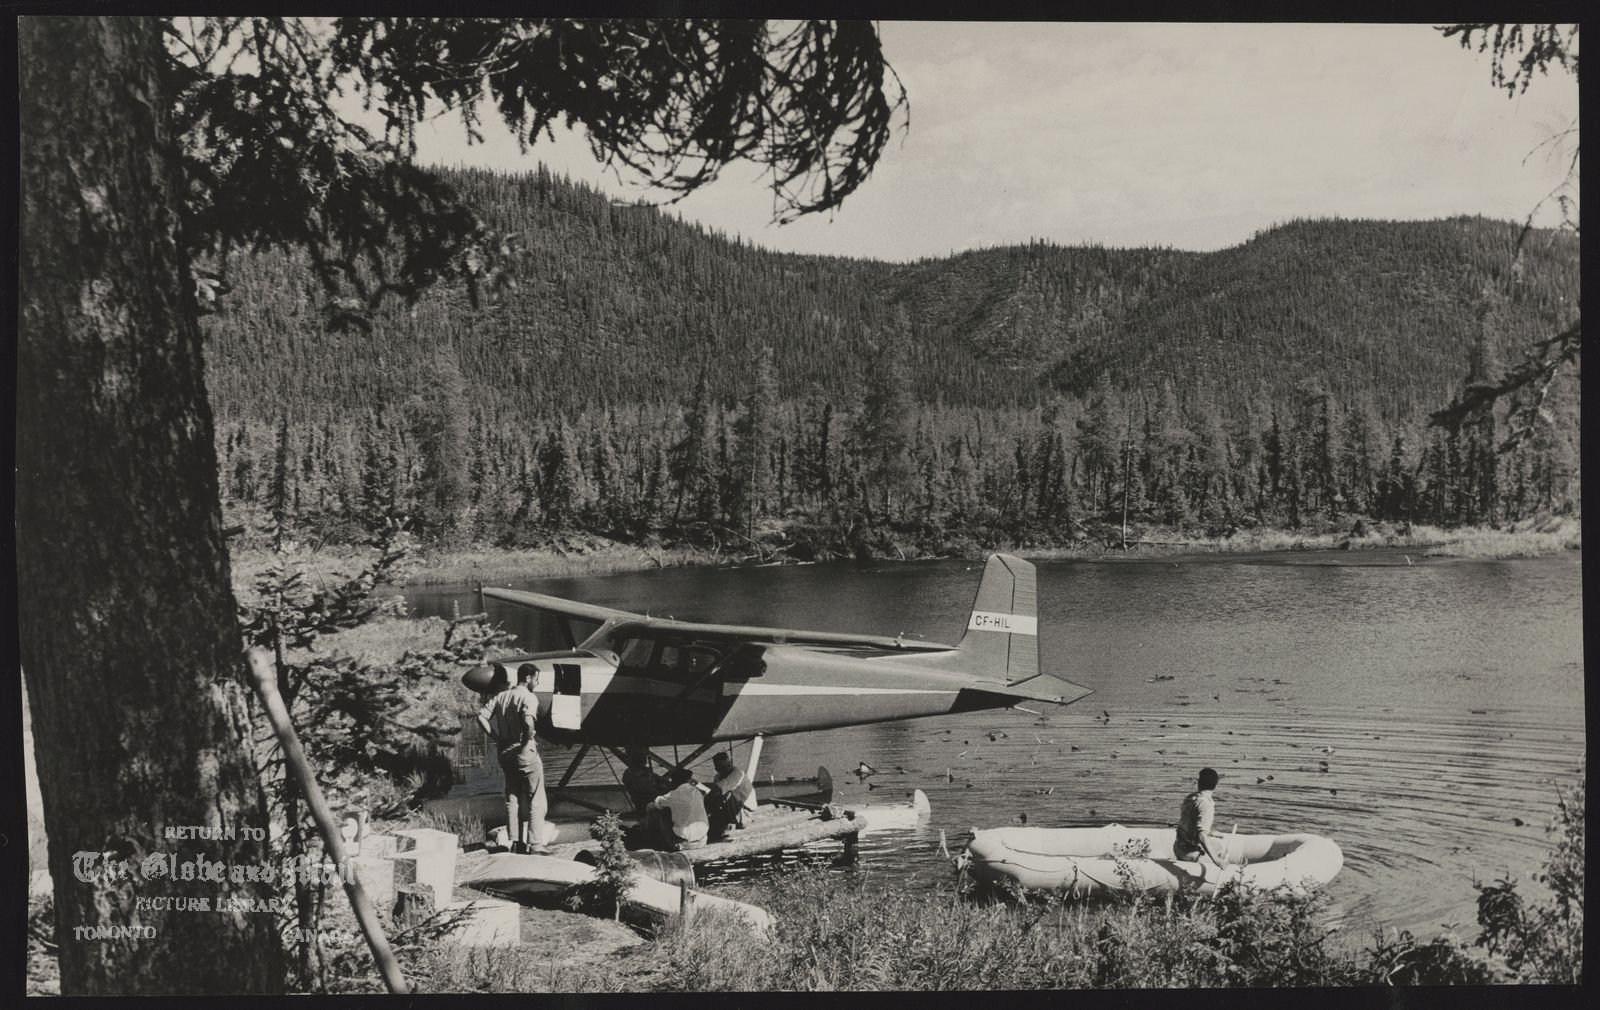 YUKON L.F. The midnight sun lights up this Yukon panorama of lake and trees and the aircraft that carried Bruce West to the busy drilling camp of Eagle Lake where men are probing thousands of feet below the permafrost for oil. This is a camp on Palmer Lake where West landed shortly before he had to transfer to a helicopter.